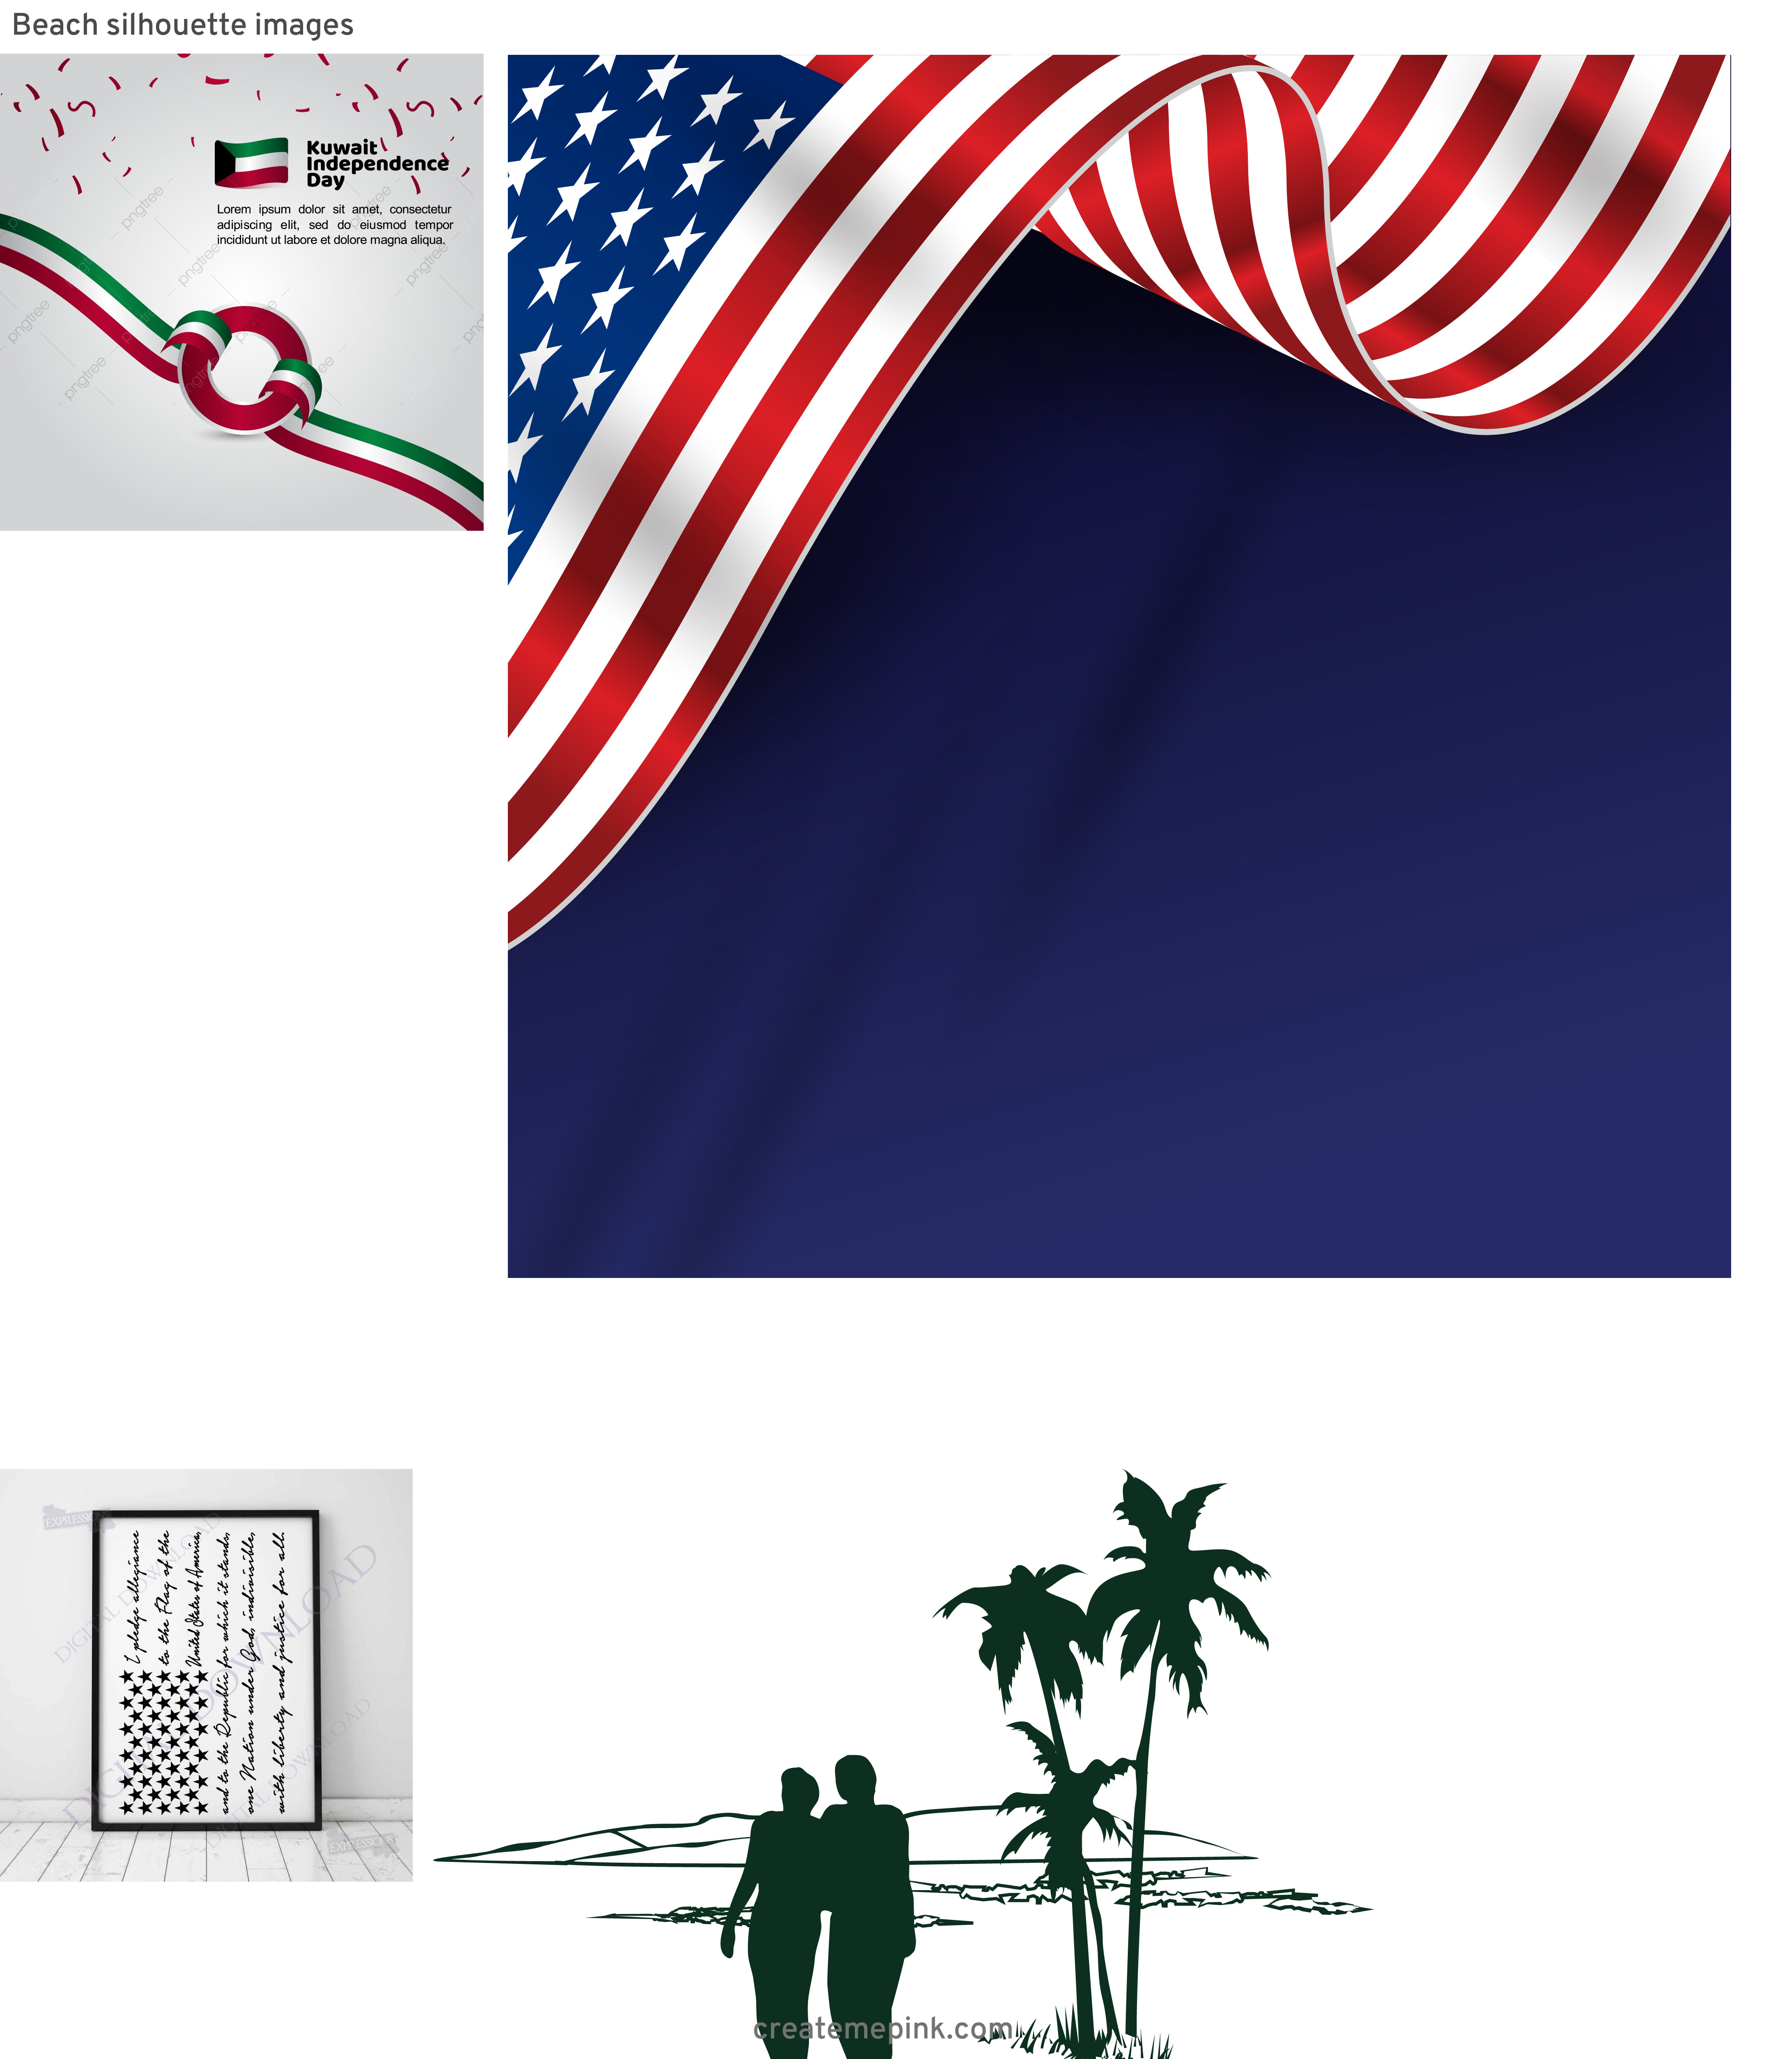 4th Of July Vectors For Men's: Beach Silhouette Images